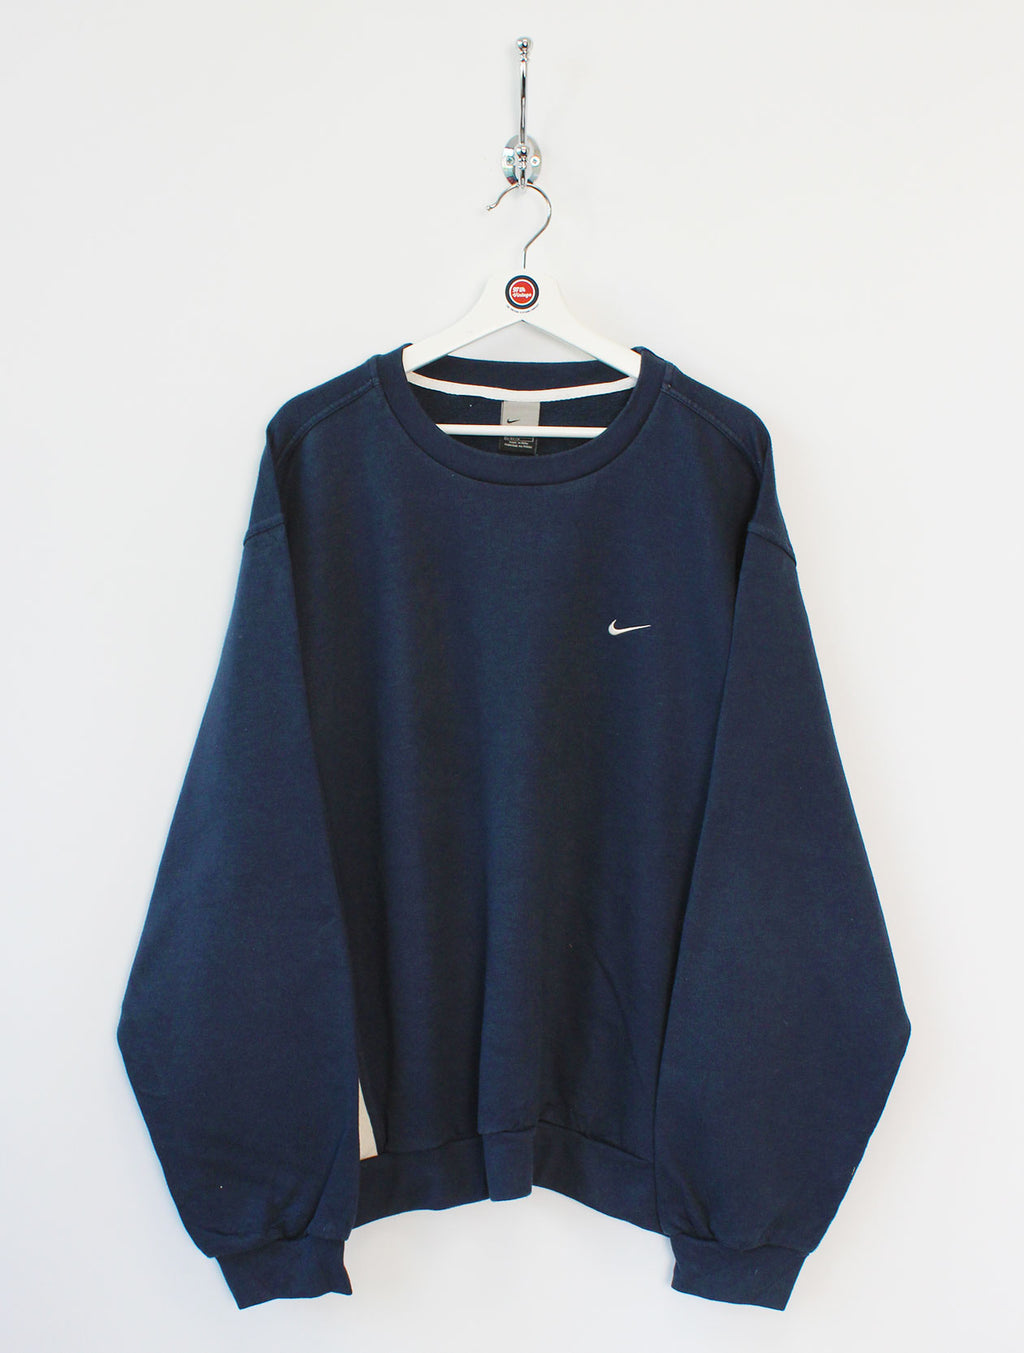 Nike Sweatshirt (XL)